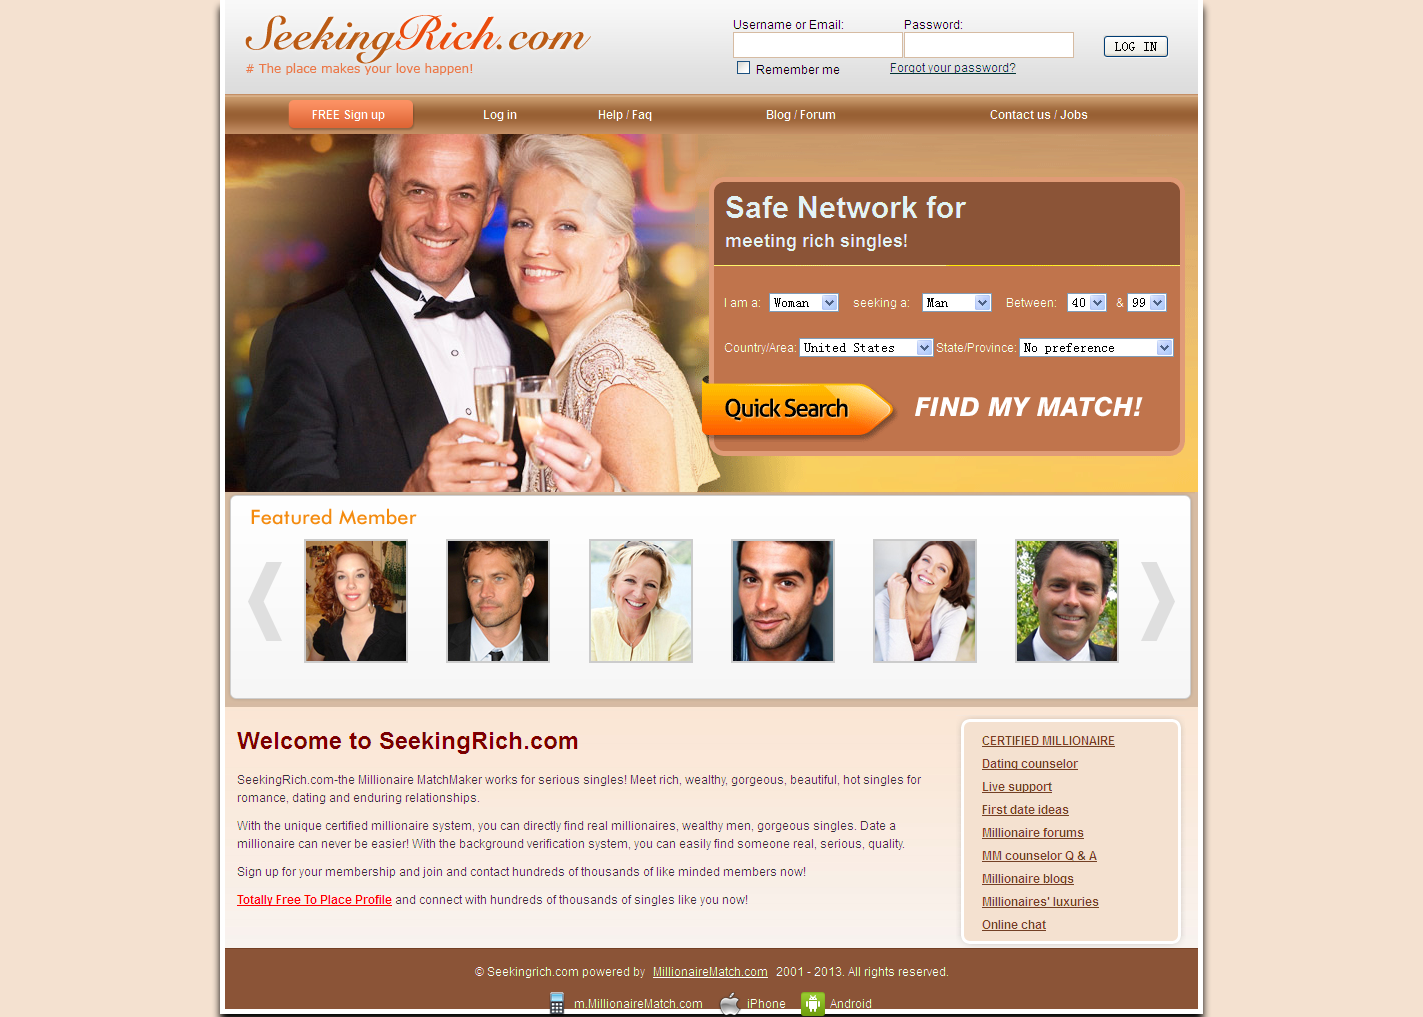 ryderwood singles dating site Trumingle is a 100% totally free dating site for singles chat, messaging, swipe right matching no fees, no credit card needed join now.